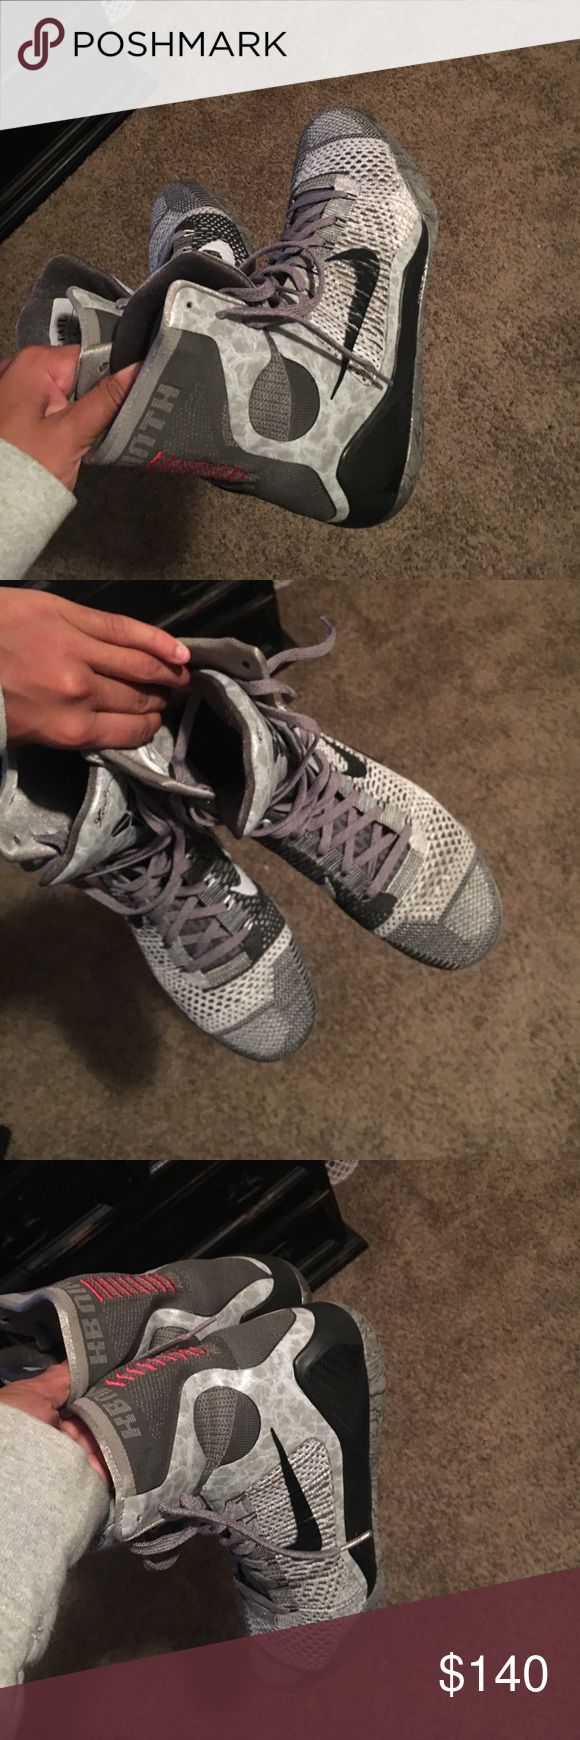 Kobe 10 Brand new worn once message me 321-248-3105 for more pictures kobe Shoes Sneakers